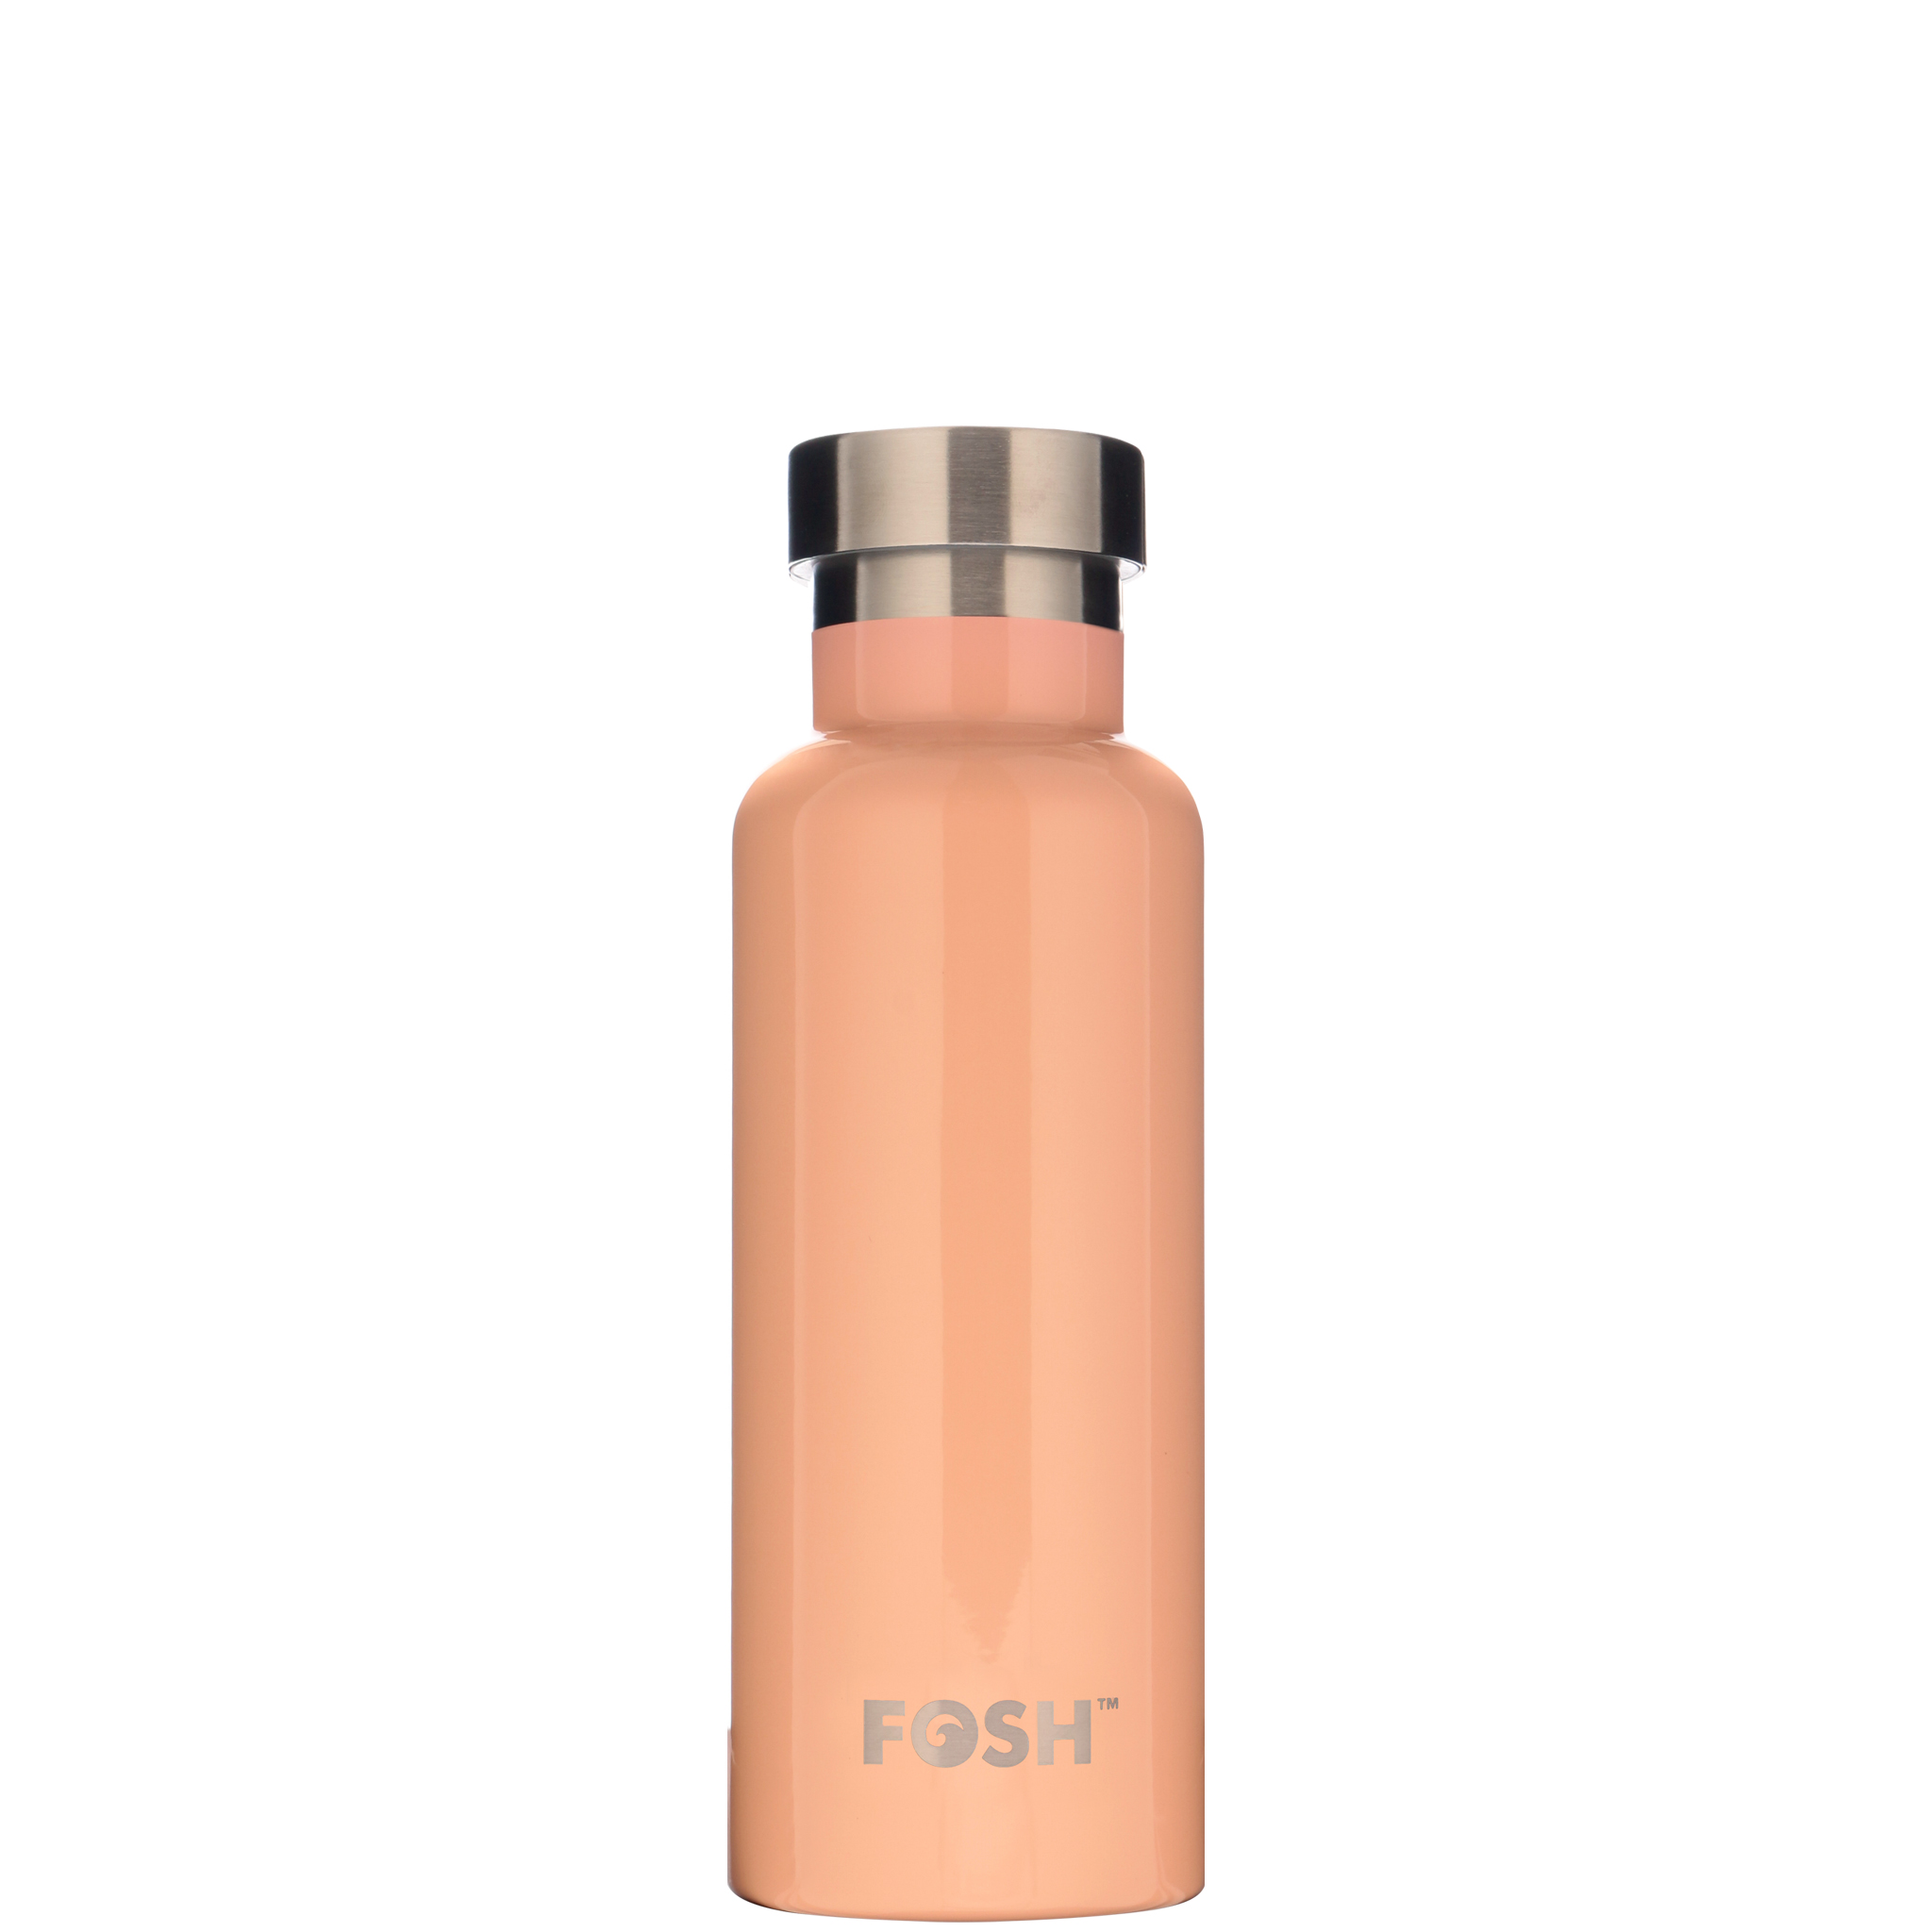 Stainless steel water bottle triple insulated apricot gloss finish